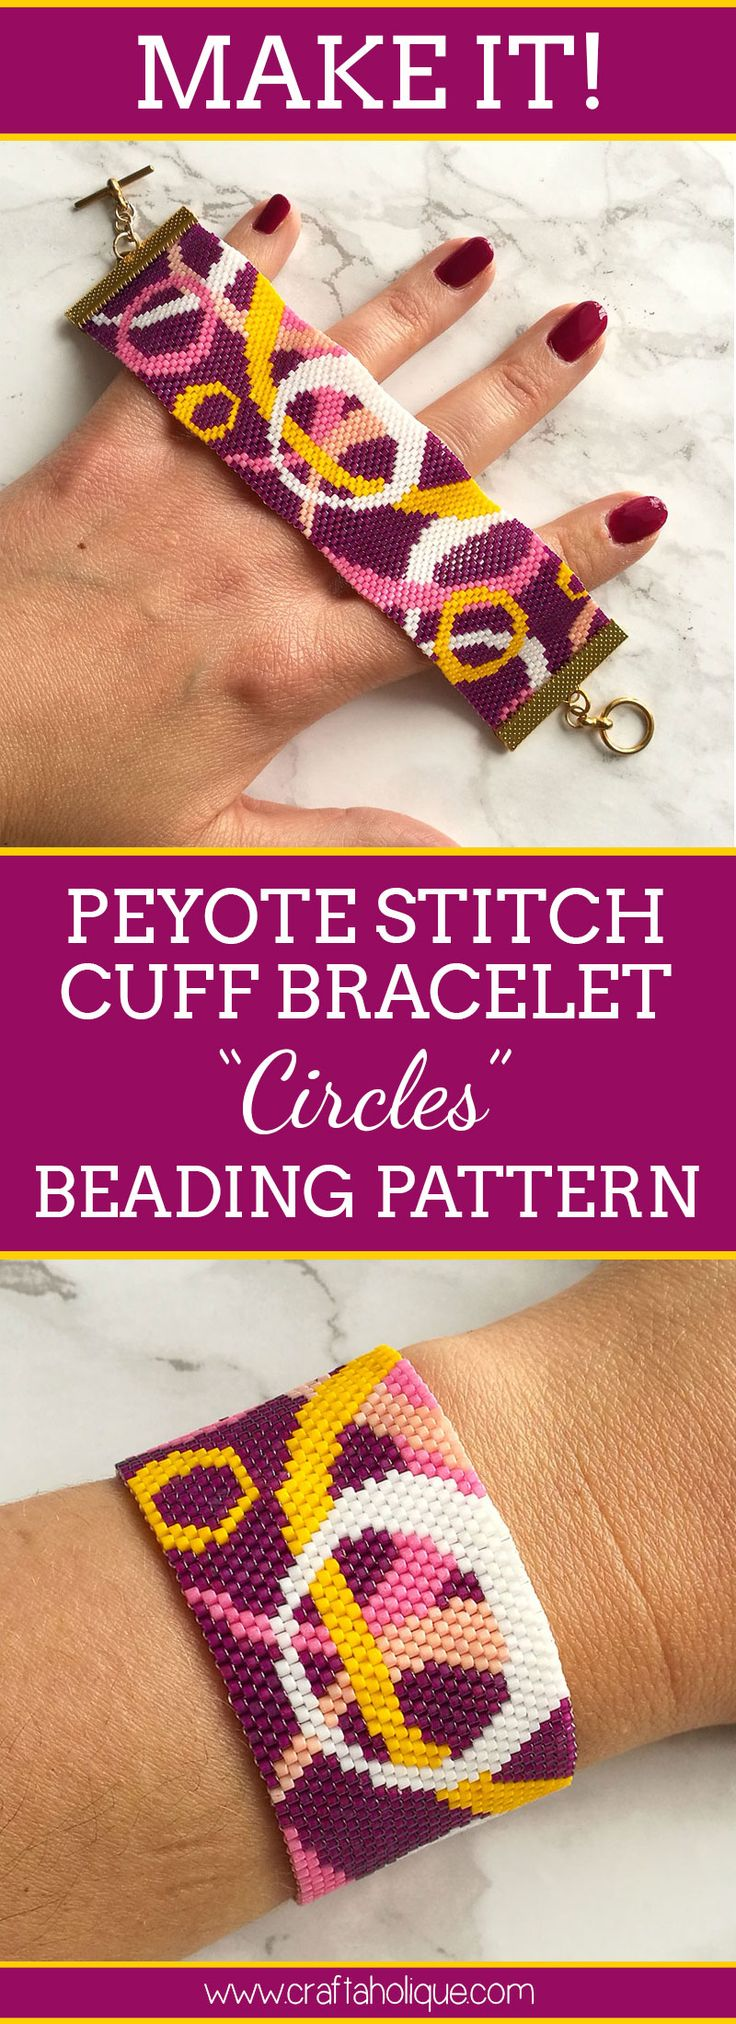 My funky Circles pattern will keep peyote stitch addicts entertained for hours! Find out more about this peyote bracelet pattern at Craftaholique.